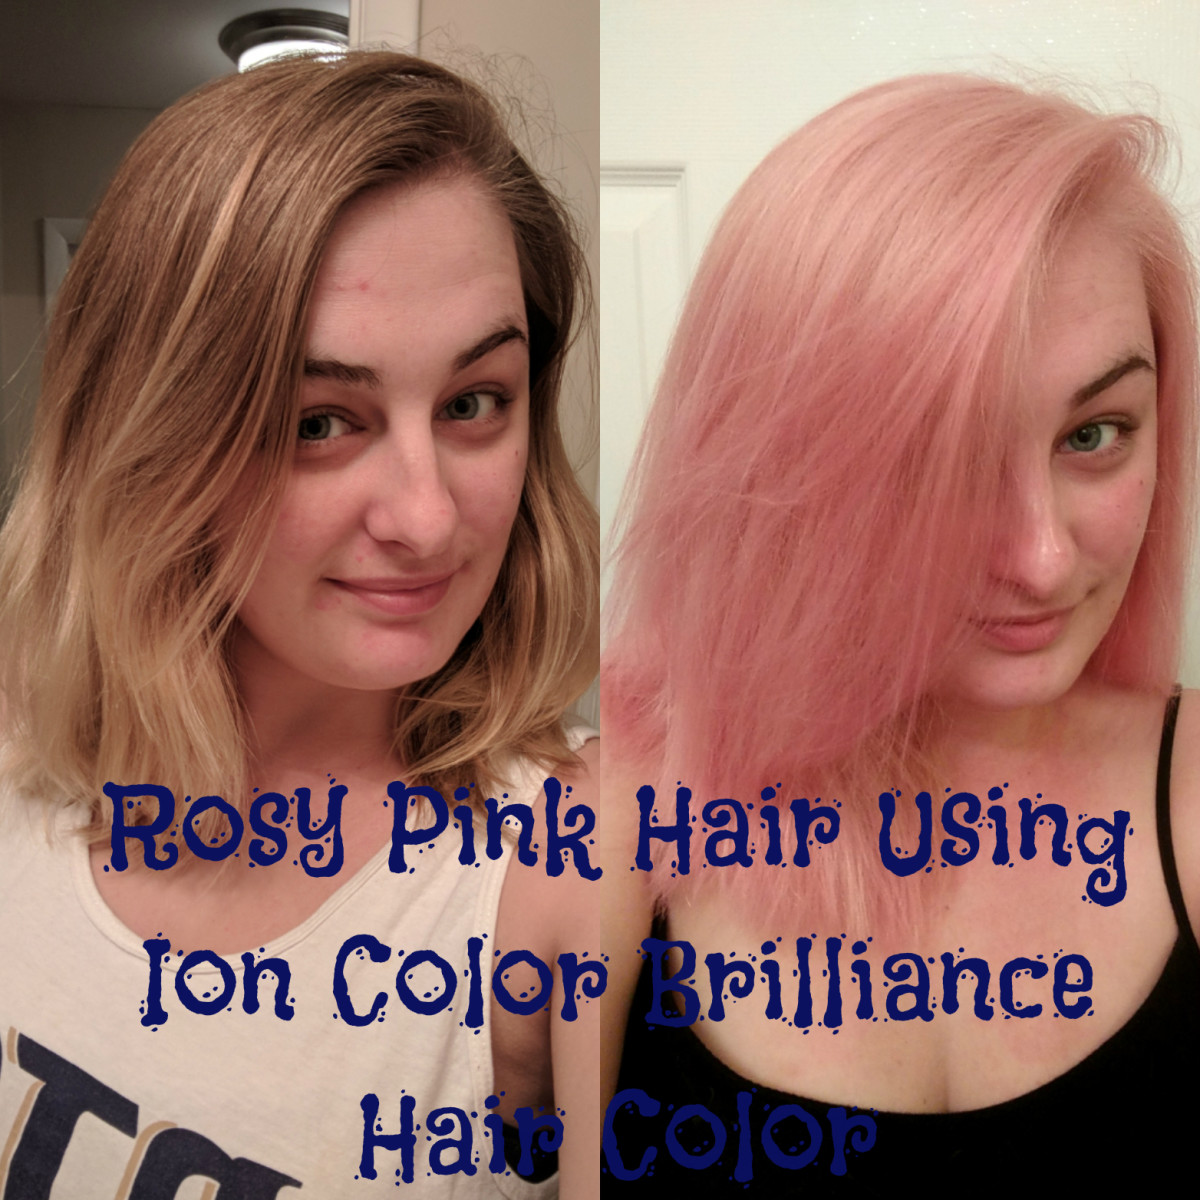 Hair DIY: How to Get Rose Quartz Hair Using Ion Color Brilliance Hair Color